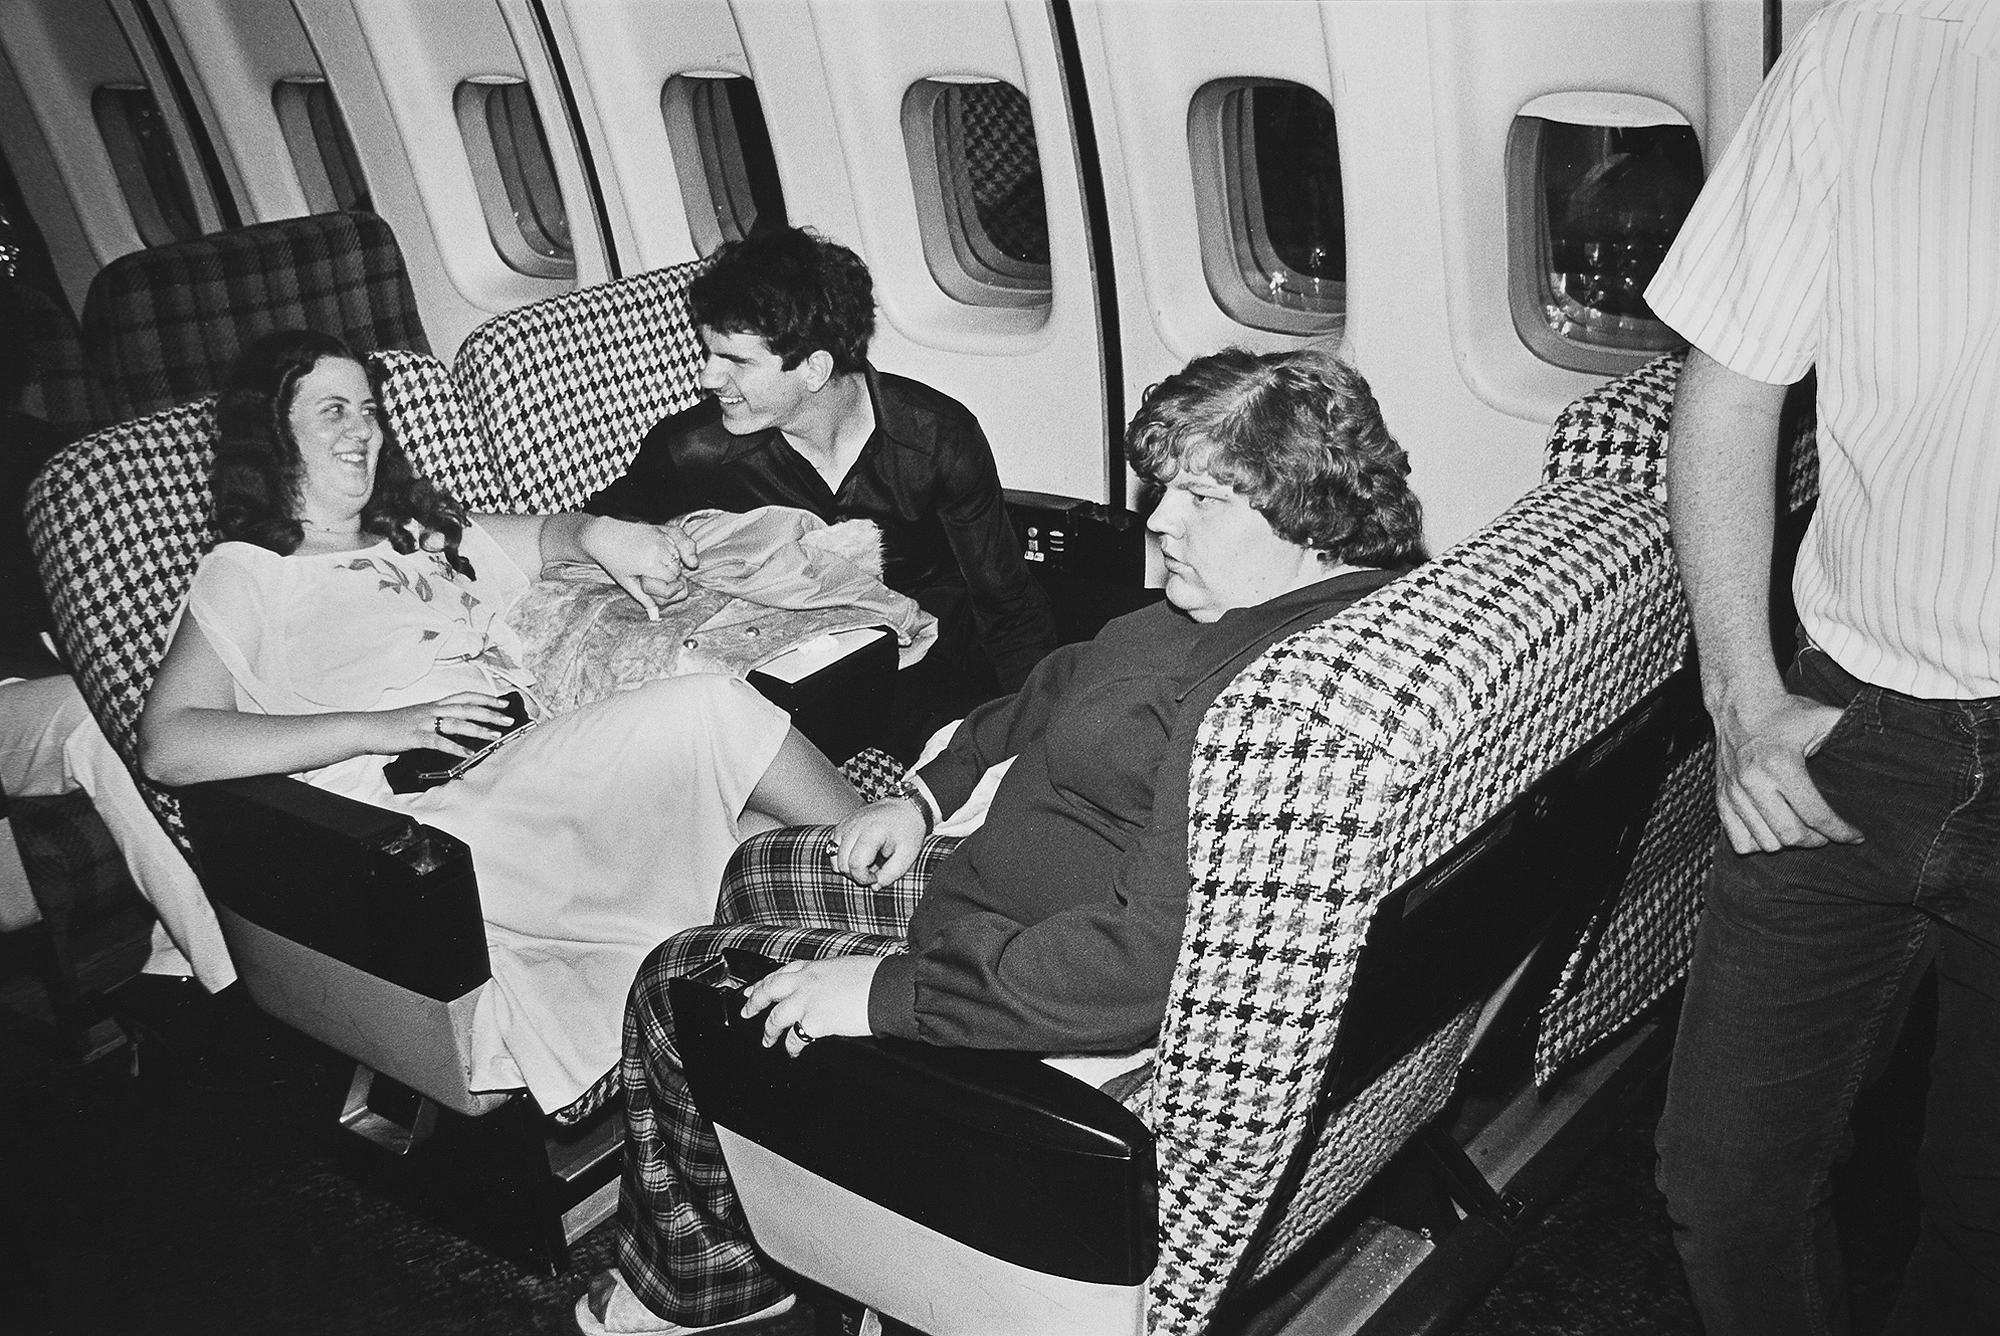 Tony_Ward_photography_early_work_Night_Fever_portfolio_1970's_erotic_dancing_couples_fat_women_love_airplane_seating